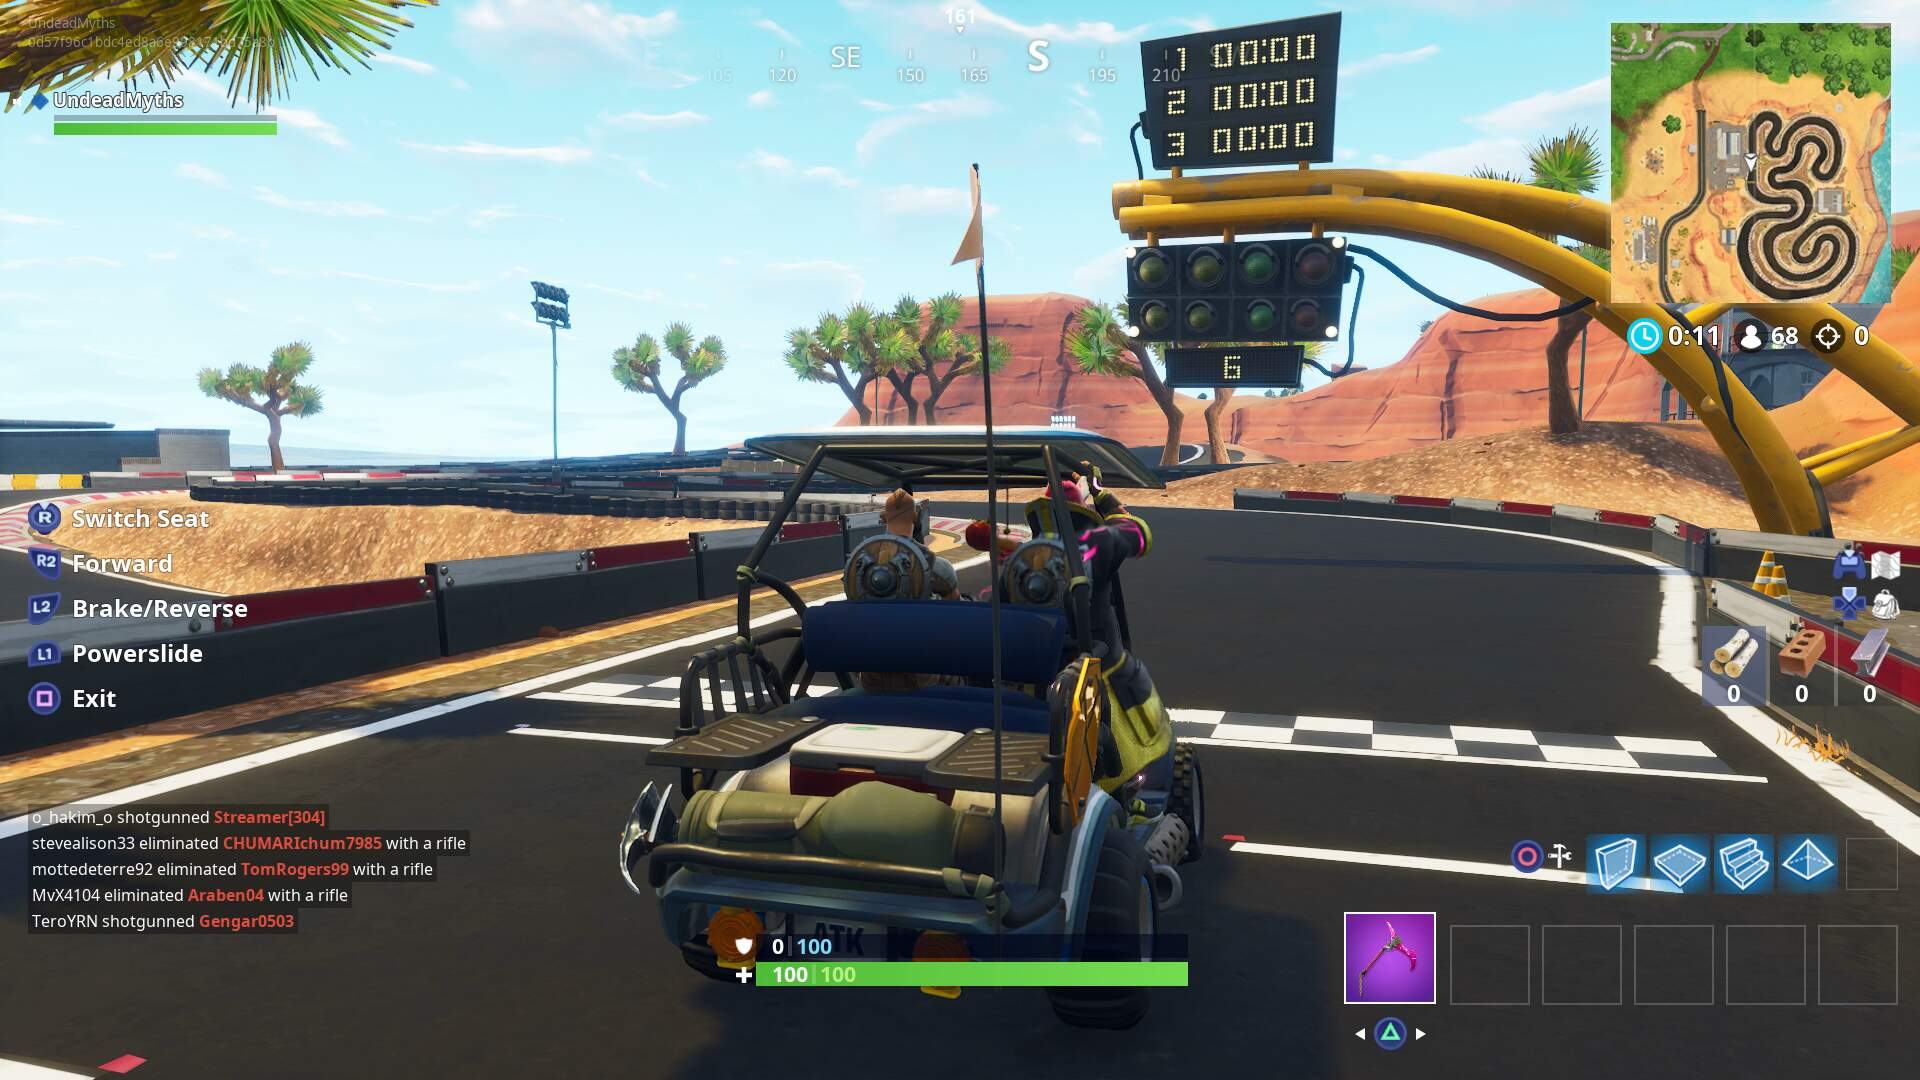 Fortnite Vehicle Timed Trials Guide and Locations